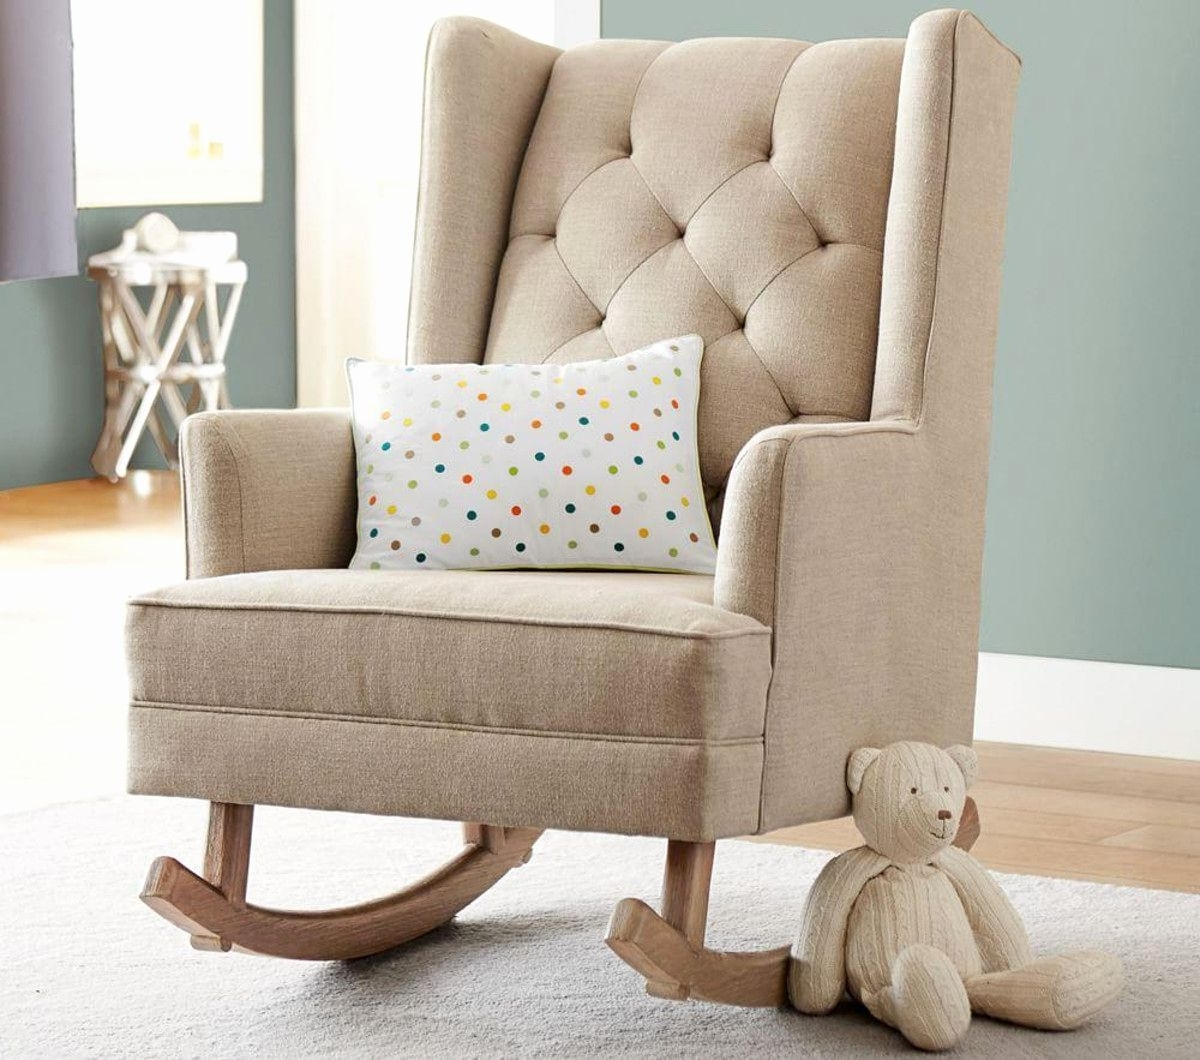 Amazing Modern Rocking Chair Nursery Wooden Ture For And Style Sxs With Current Rocking Chairs Adelaide (View 2 of 20)